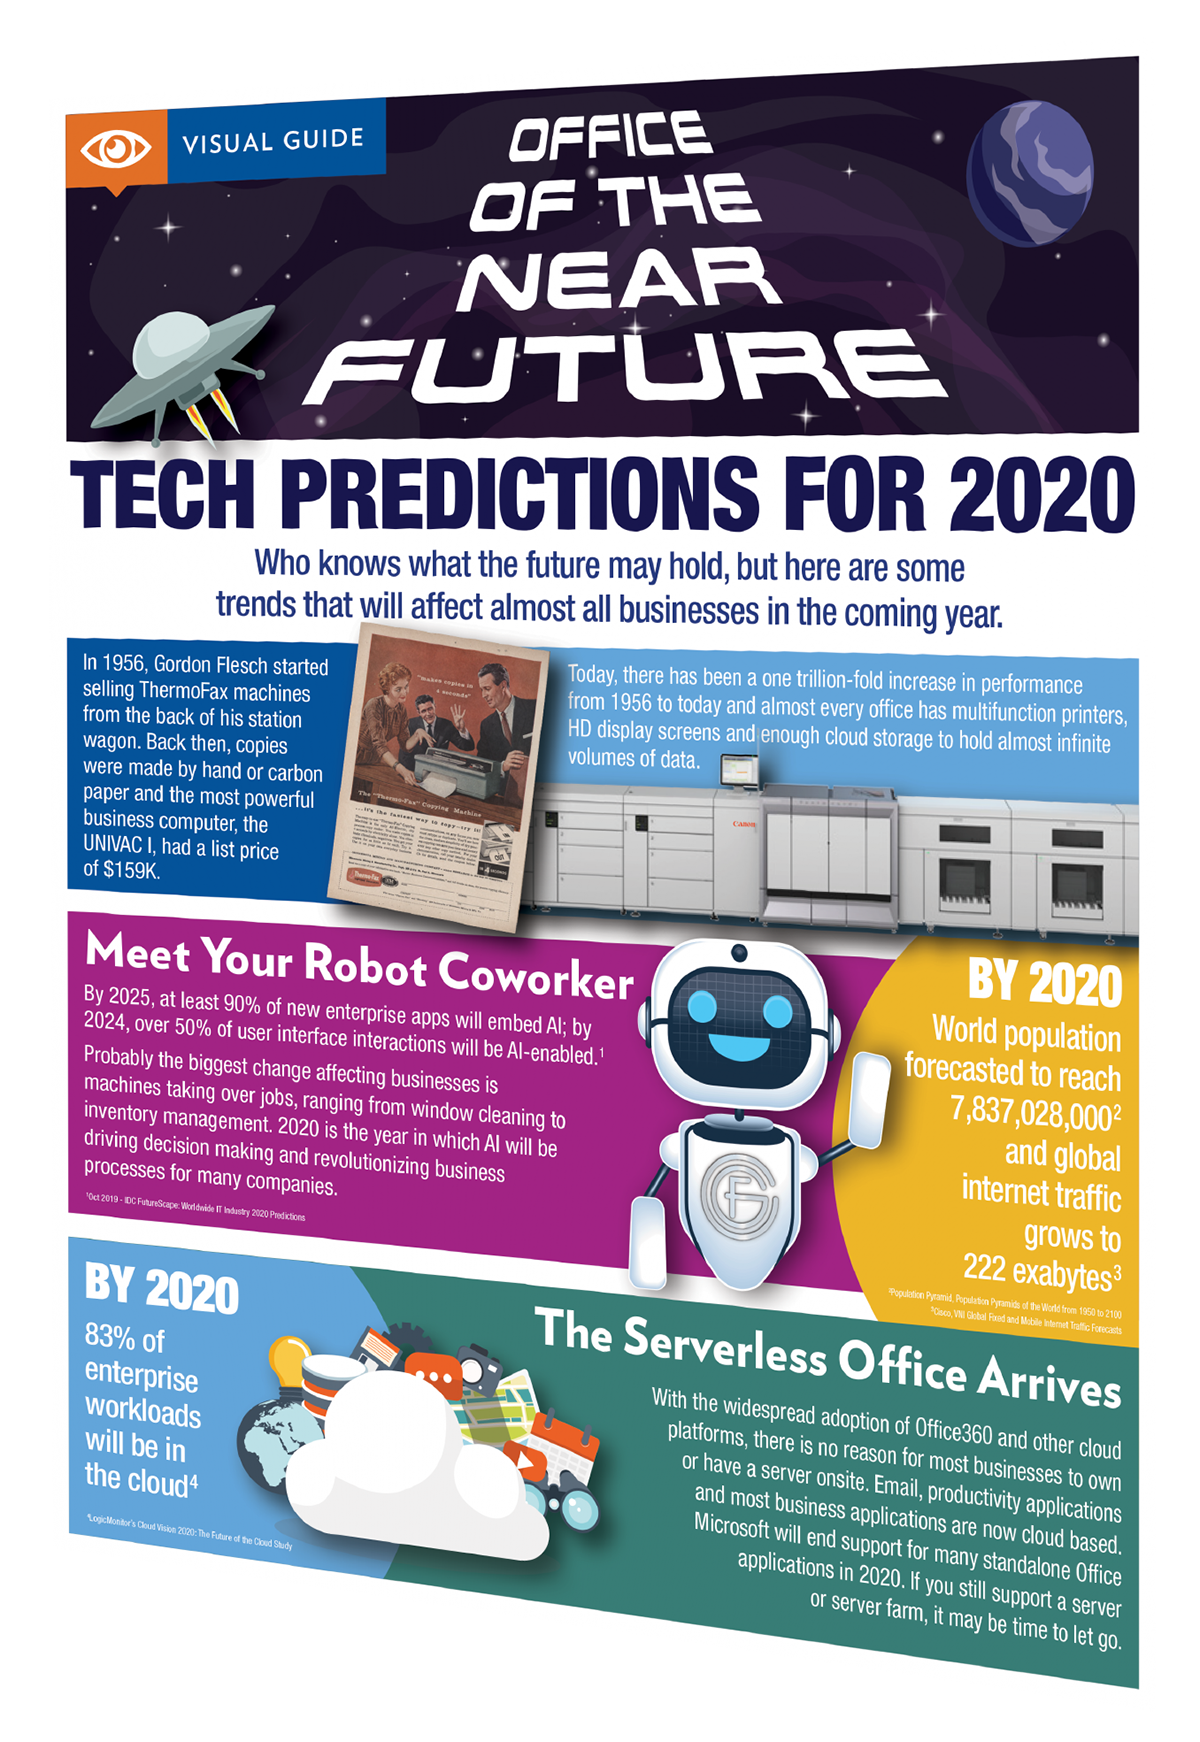 2020 Tech Predictions Infographic